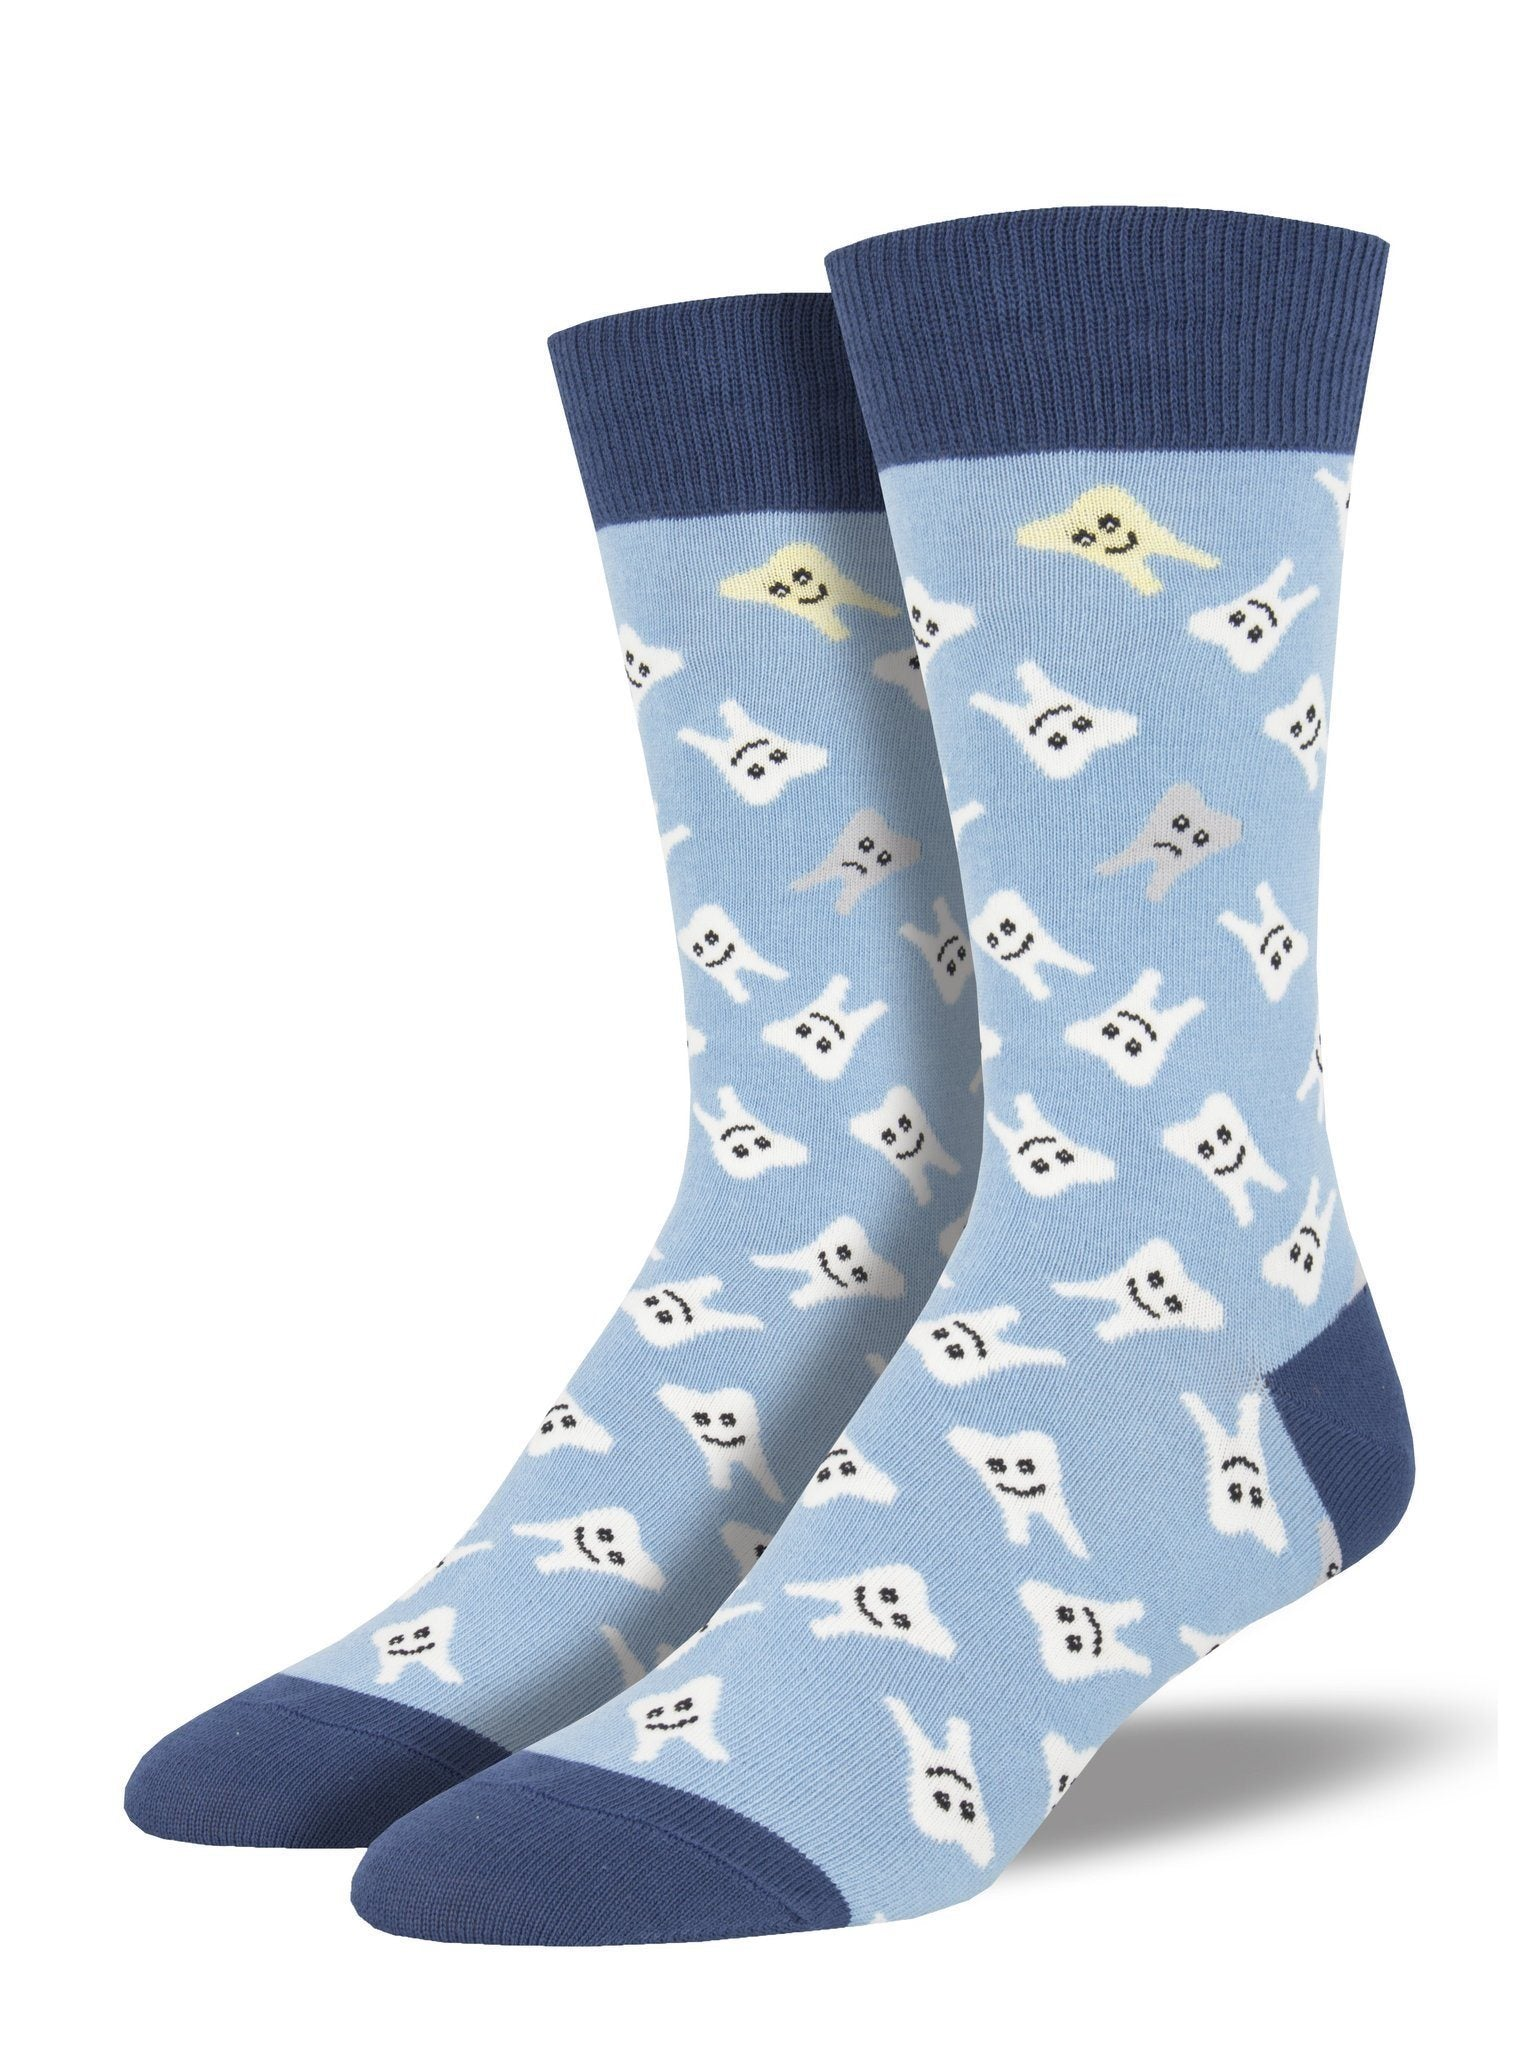 Socksmith - Happy Teeth Crew Socks | Men's - Knock Your Socks Off